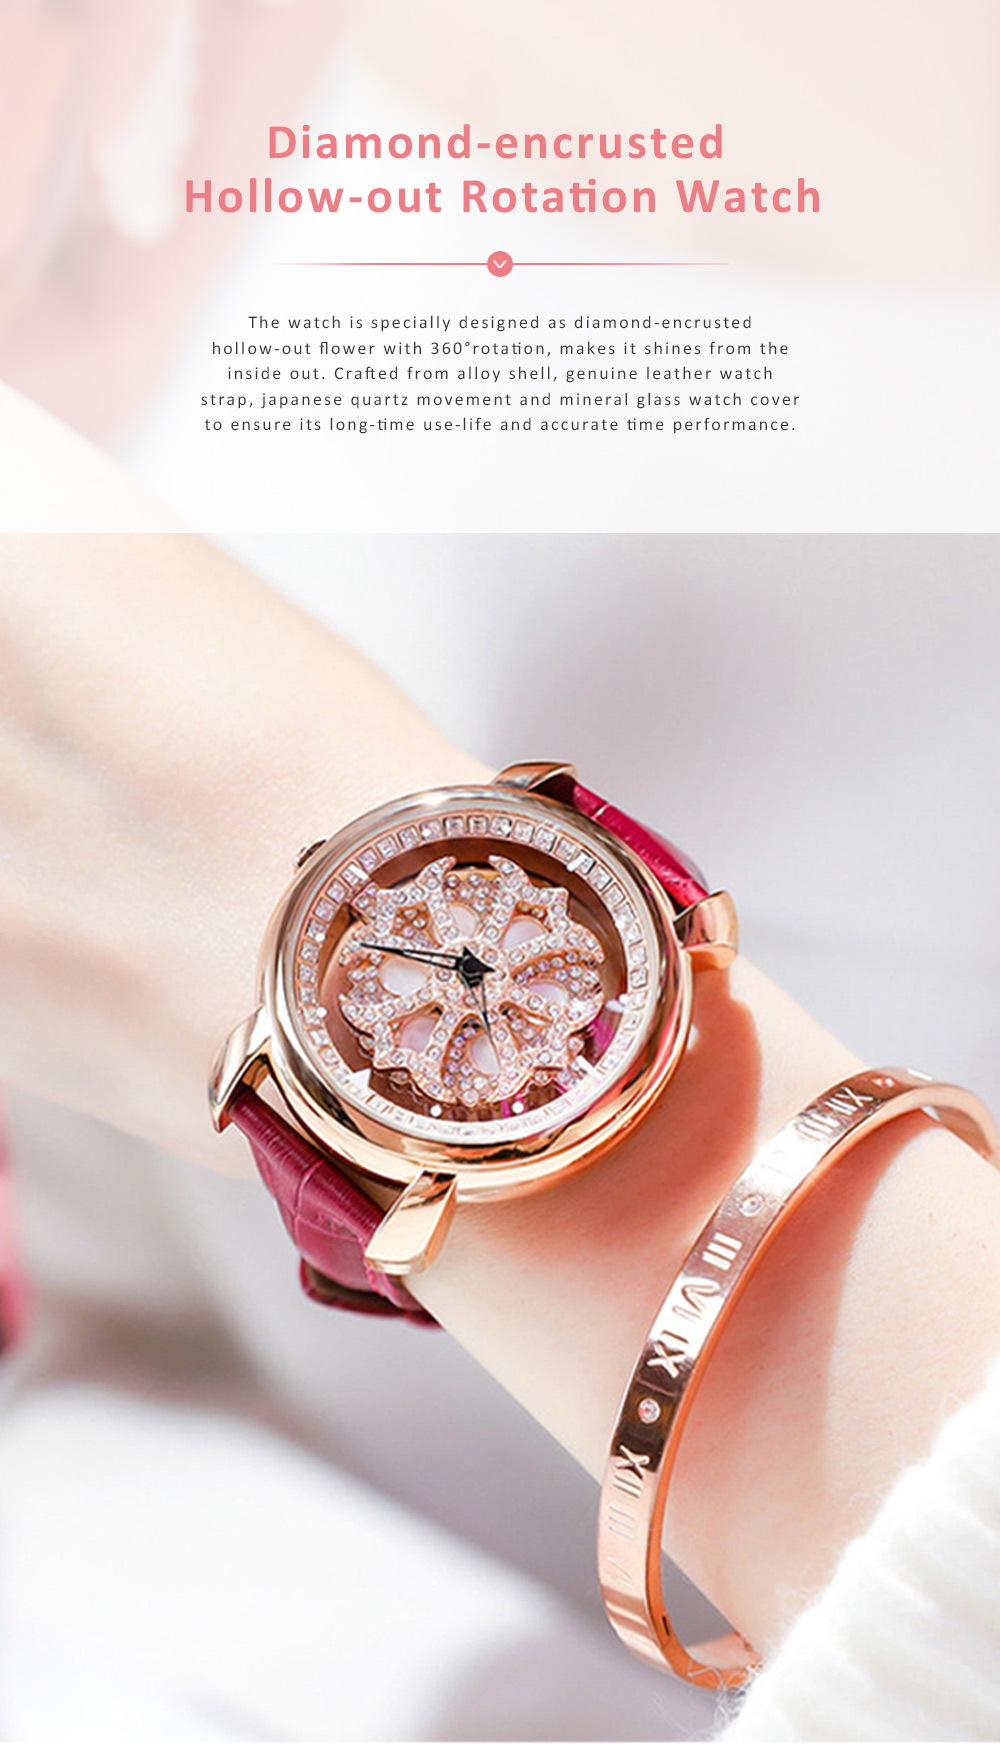 Diamond-encrusted Hollow-out Rotation Watch for Ladies Waterproof Japanese Quartz Movement Wrist Watch 0